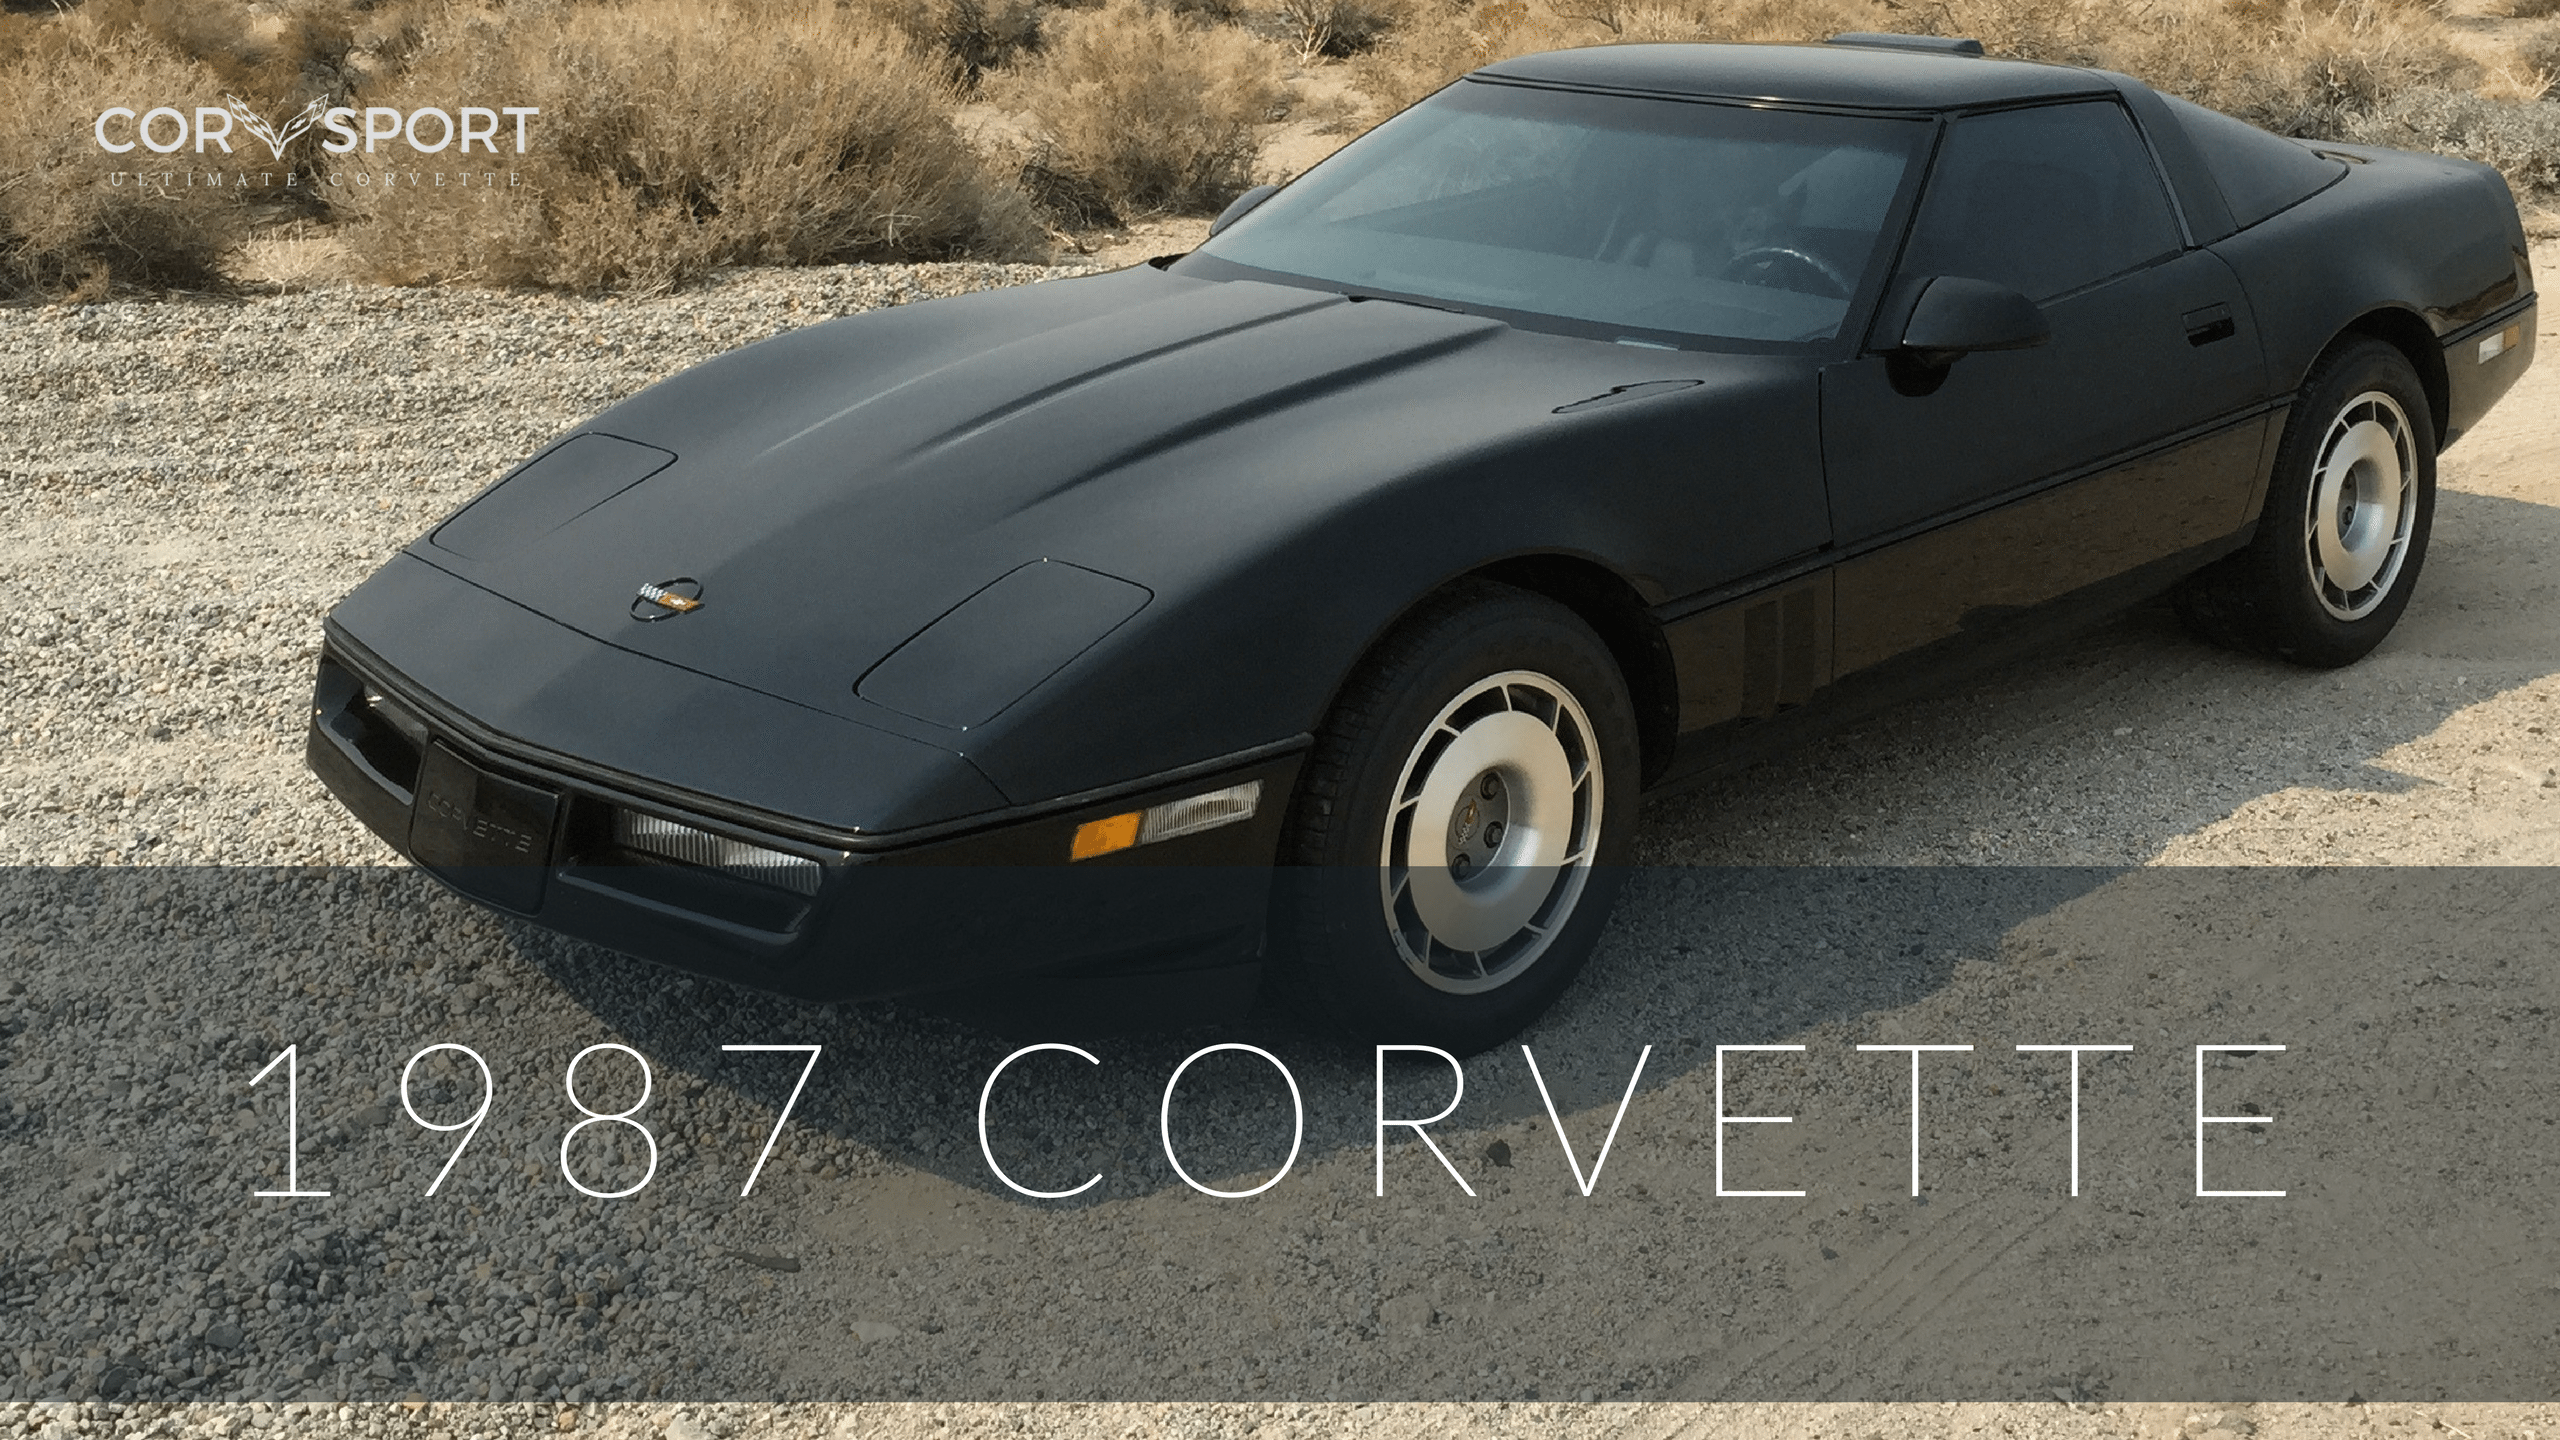 1987 C4 Corvette | Ultimate Guide (Overview, Specs, VIN Info